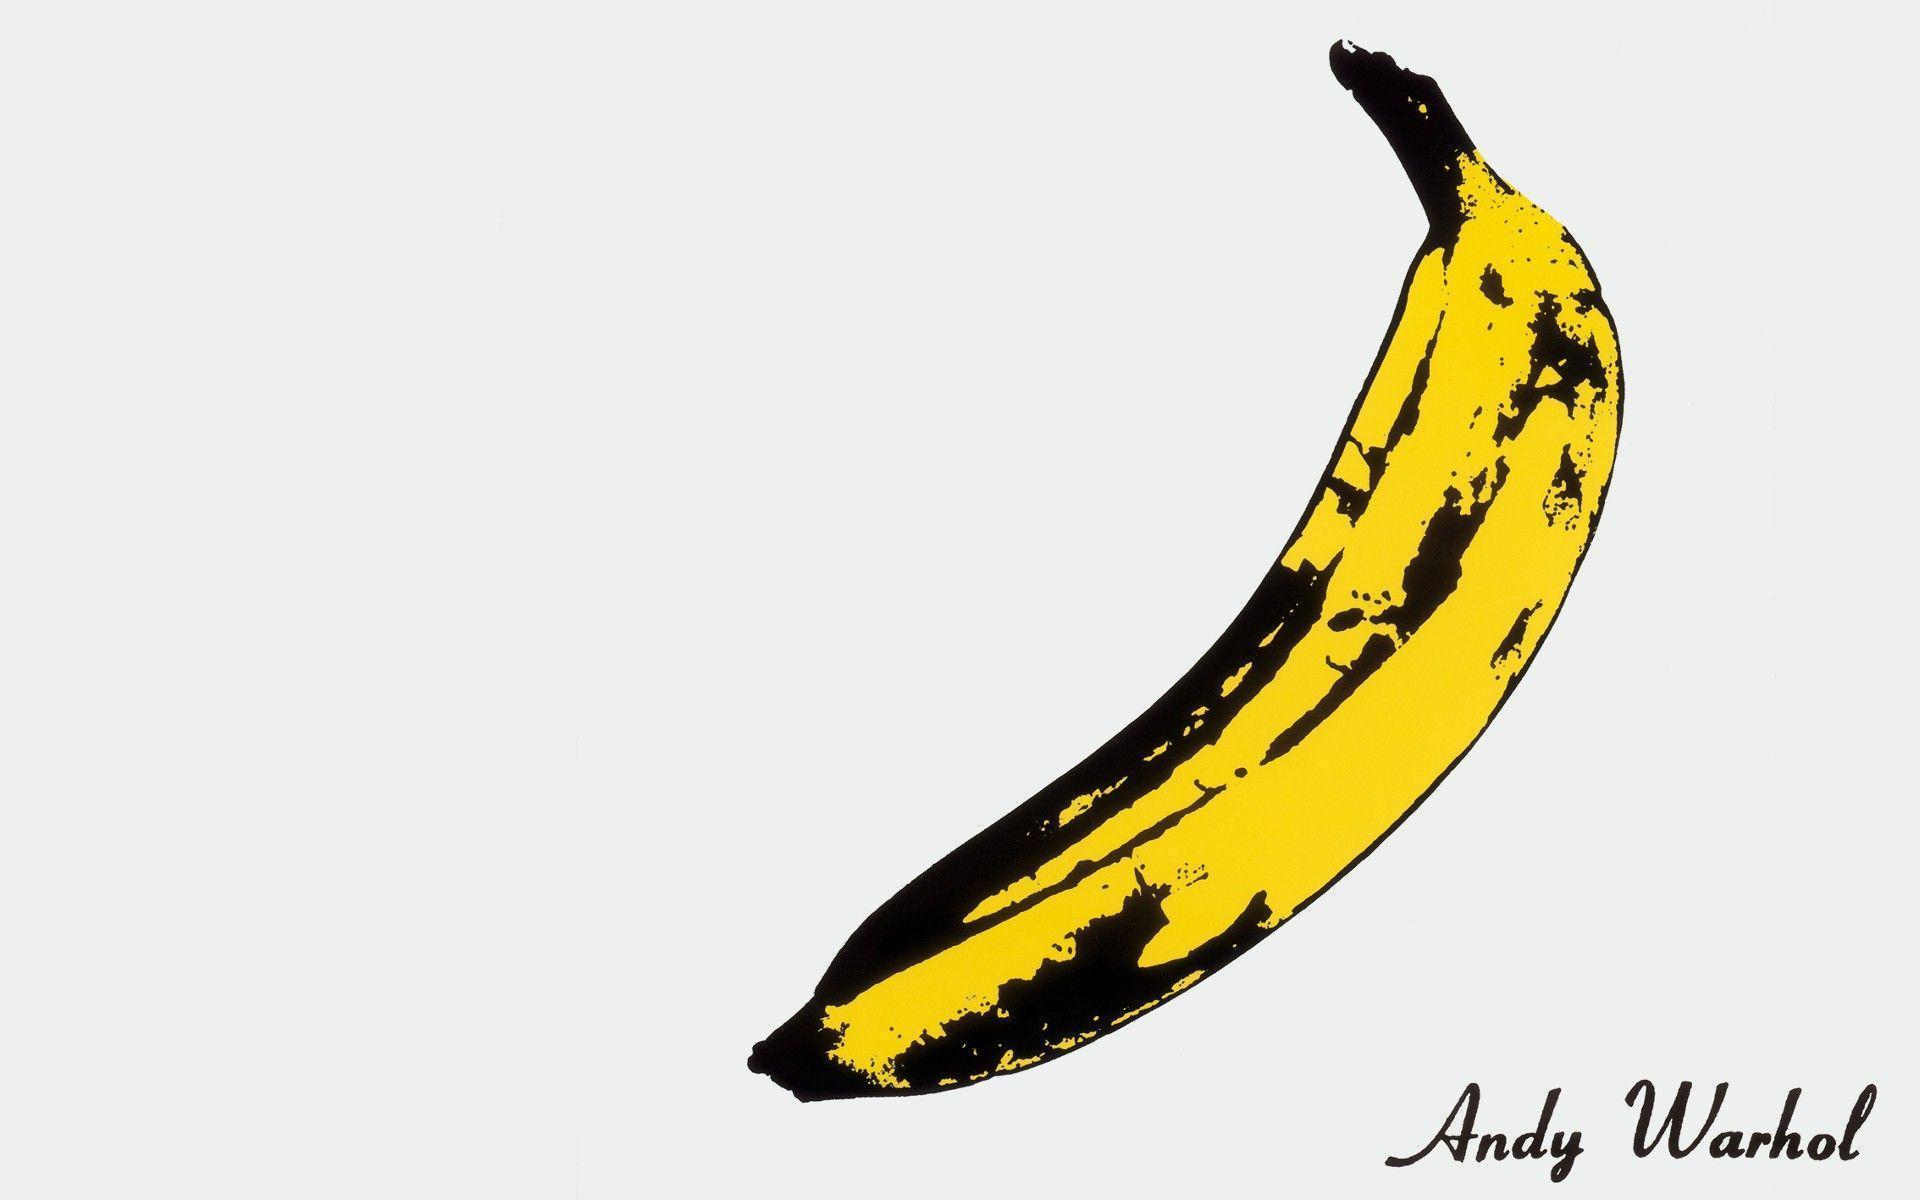 bananas, Artwork, Andy Warhol, Minimalism Wallpapers HD / Desktop ...